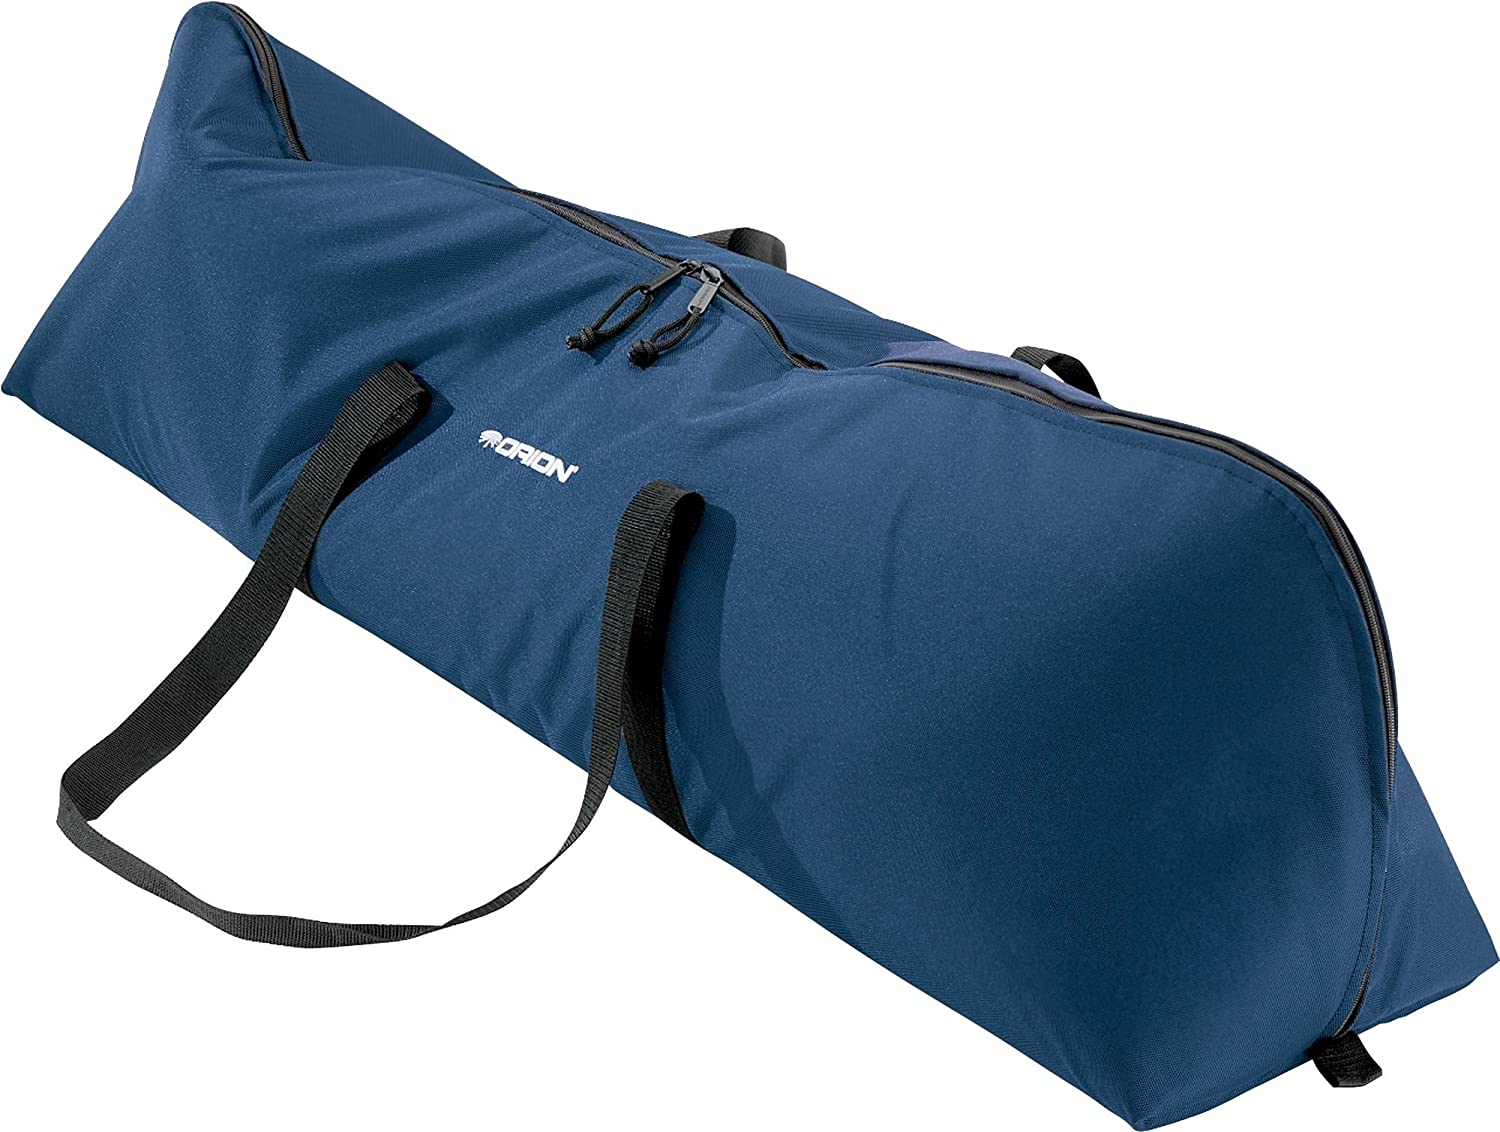 Orion 15170 47x17x18 Inches Padded Telescope Case